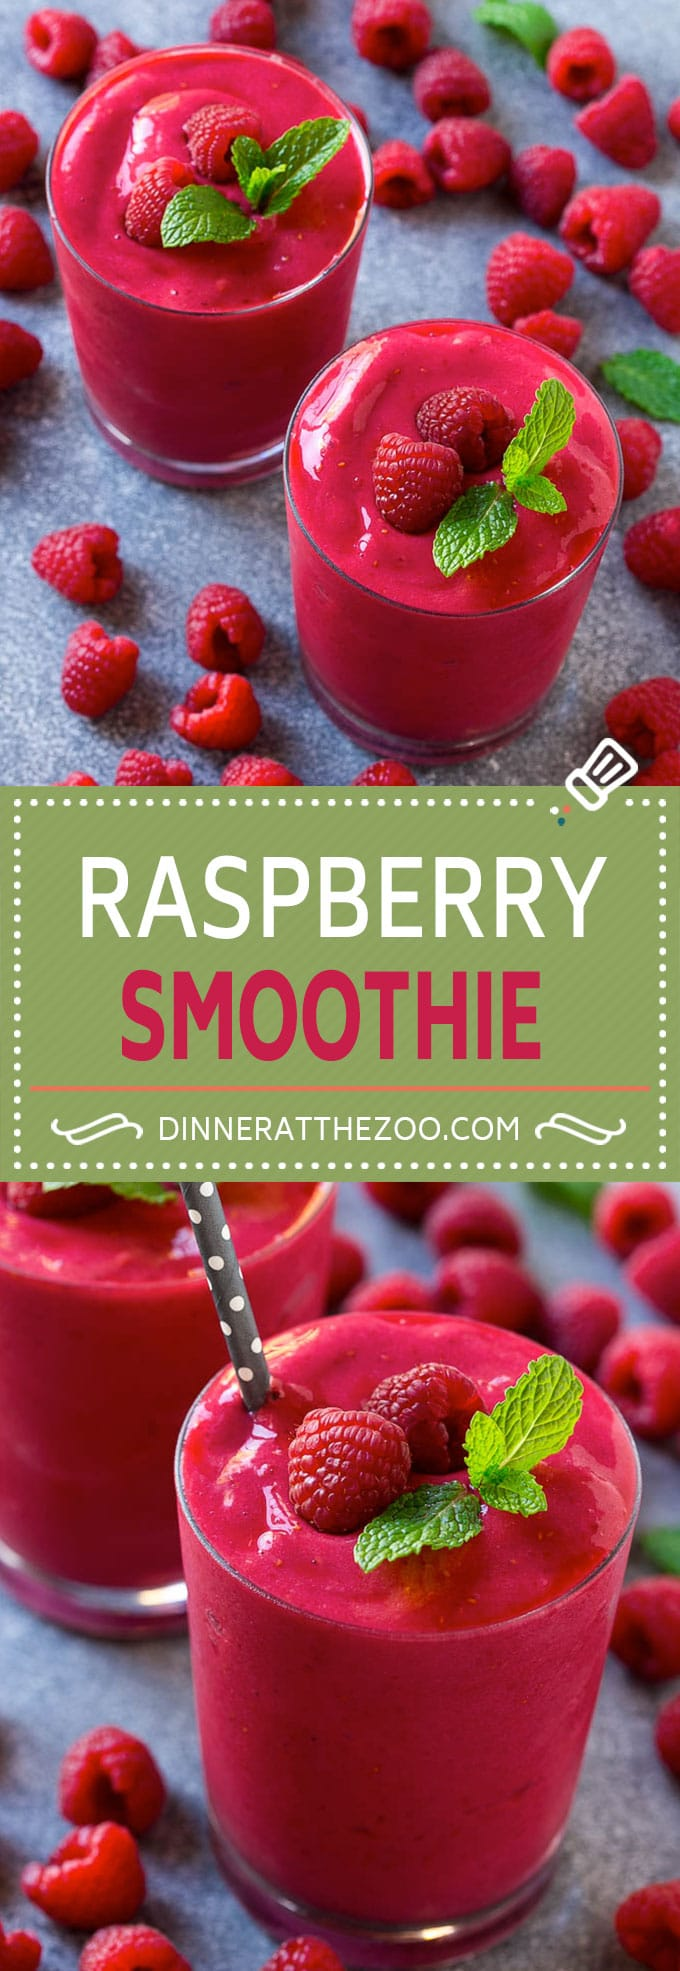 Raspberry Smoothie Recipe | Raspberry Banana Smoothie | Healthy Smoothie | Berry Smoothie | Greek Yogurt Smoothie #smoothie #raspberries #drink #healthy #dinneratthezoo